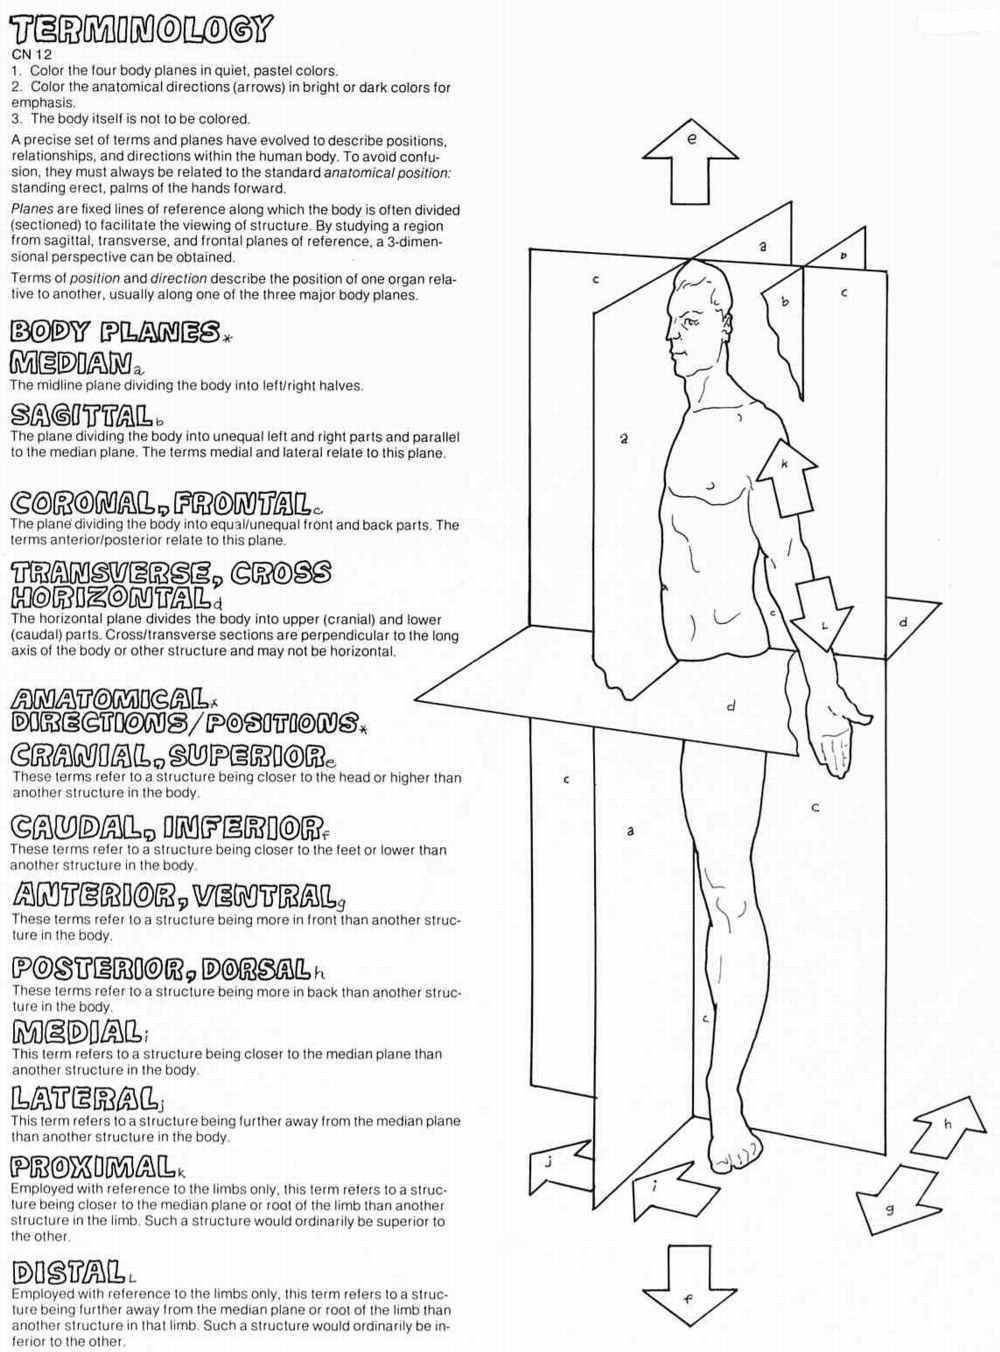 Printables Anatomical Directions Worksheet directions worksheet davezan anatomical davezan